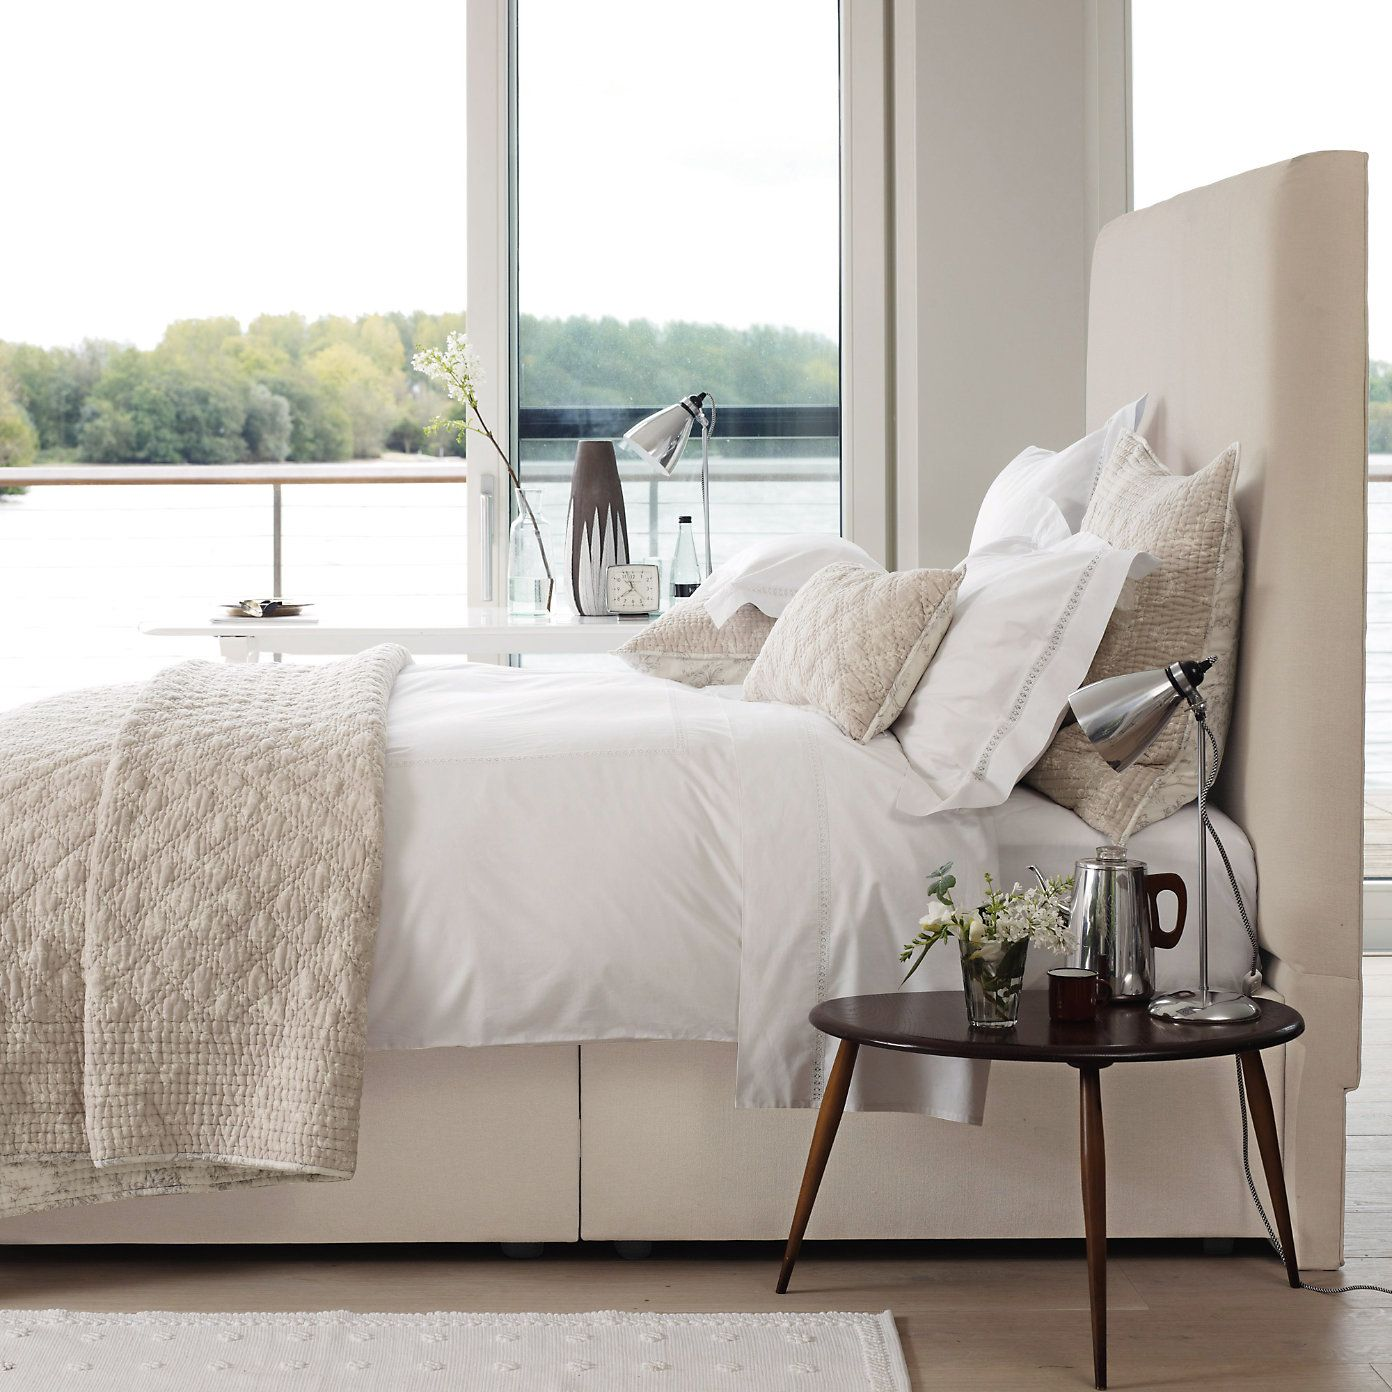 Bedroom Decorating Ideas Neutral high fabric headboard, cream neutral bedroom | home sweet home